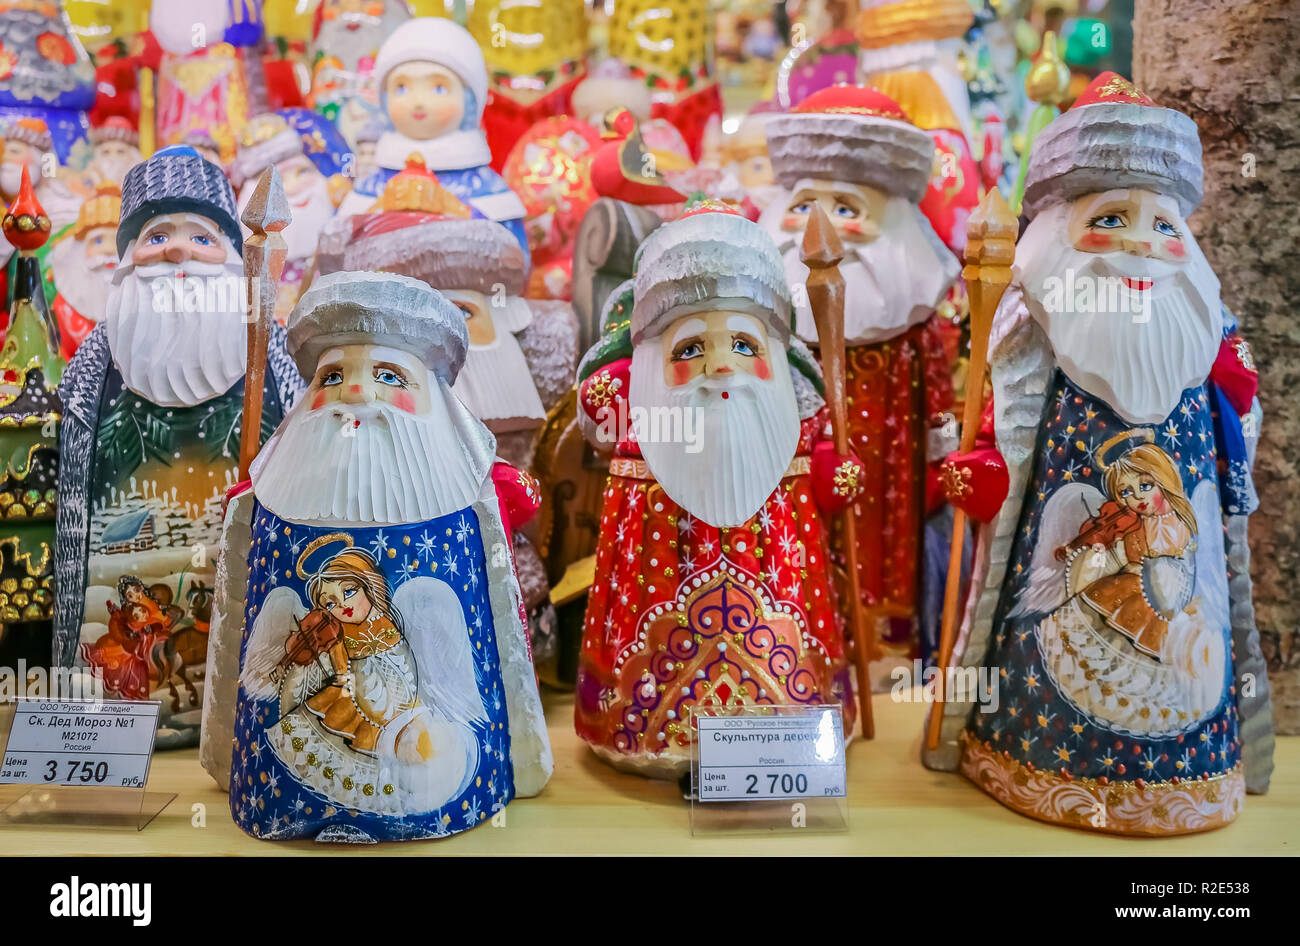 Russia Christmas Ornaments.Colorful Christmas Ornaments Of Russian Santa Claus Or Ded